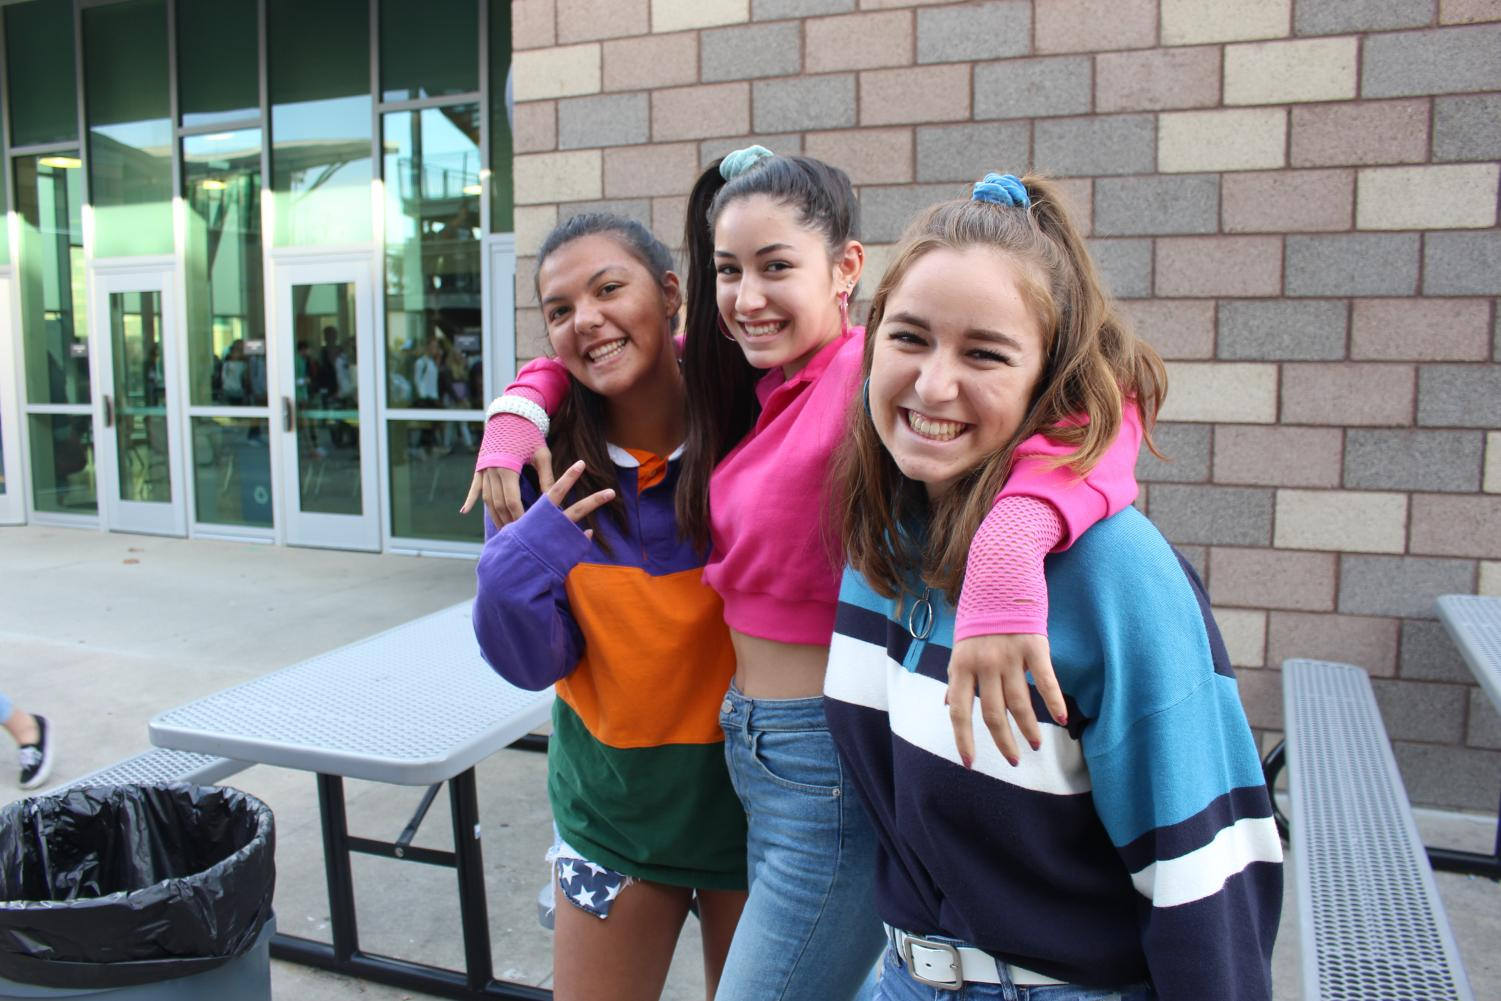 Students+travel+back+to+the+1980s%21+Last+Tuesday+students+including+seniors+Tori+Cudal%2C+Olivia+Mejia+and+Allison+DelGrande+dress+up+from+head+to+toe+for+the+school%27s+%22Decade+Spirit+Day.%22